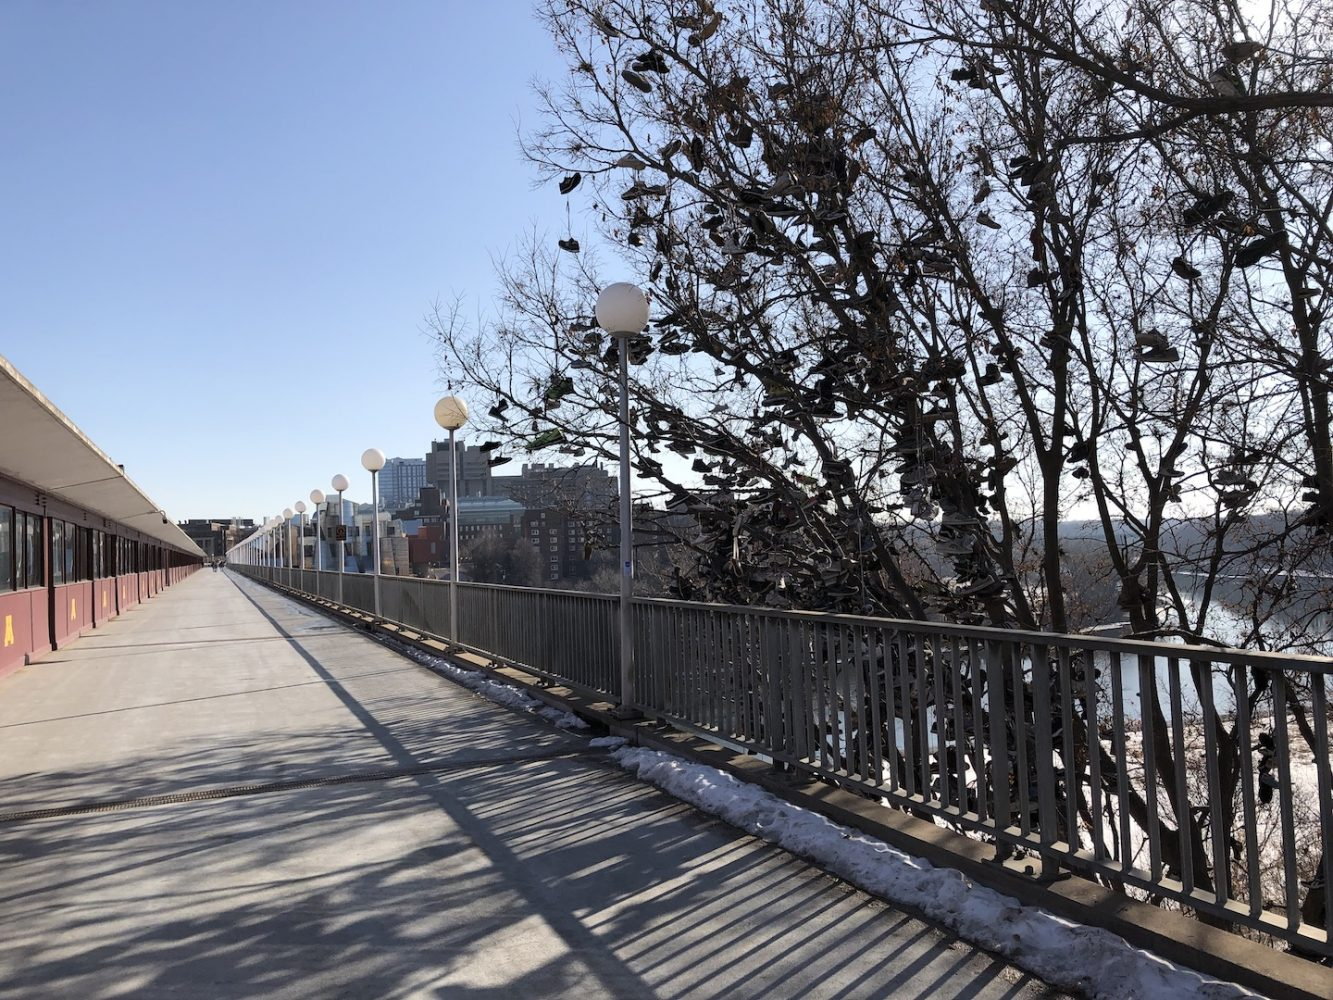 The Washington Avenue bridge walkway facing the East Bank. The Shoe Tree is to the right with some branches hanging over the walkway.